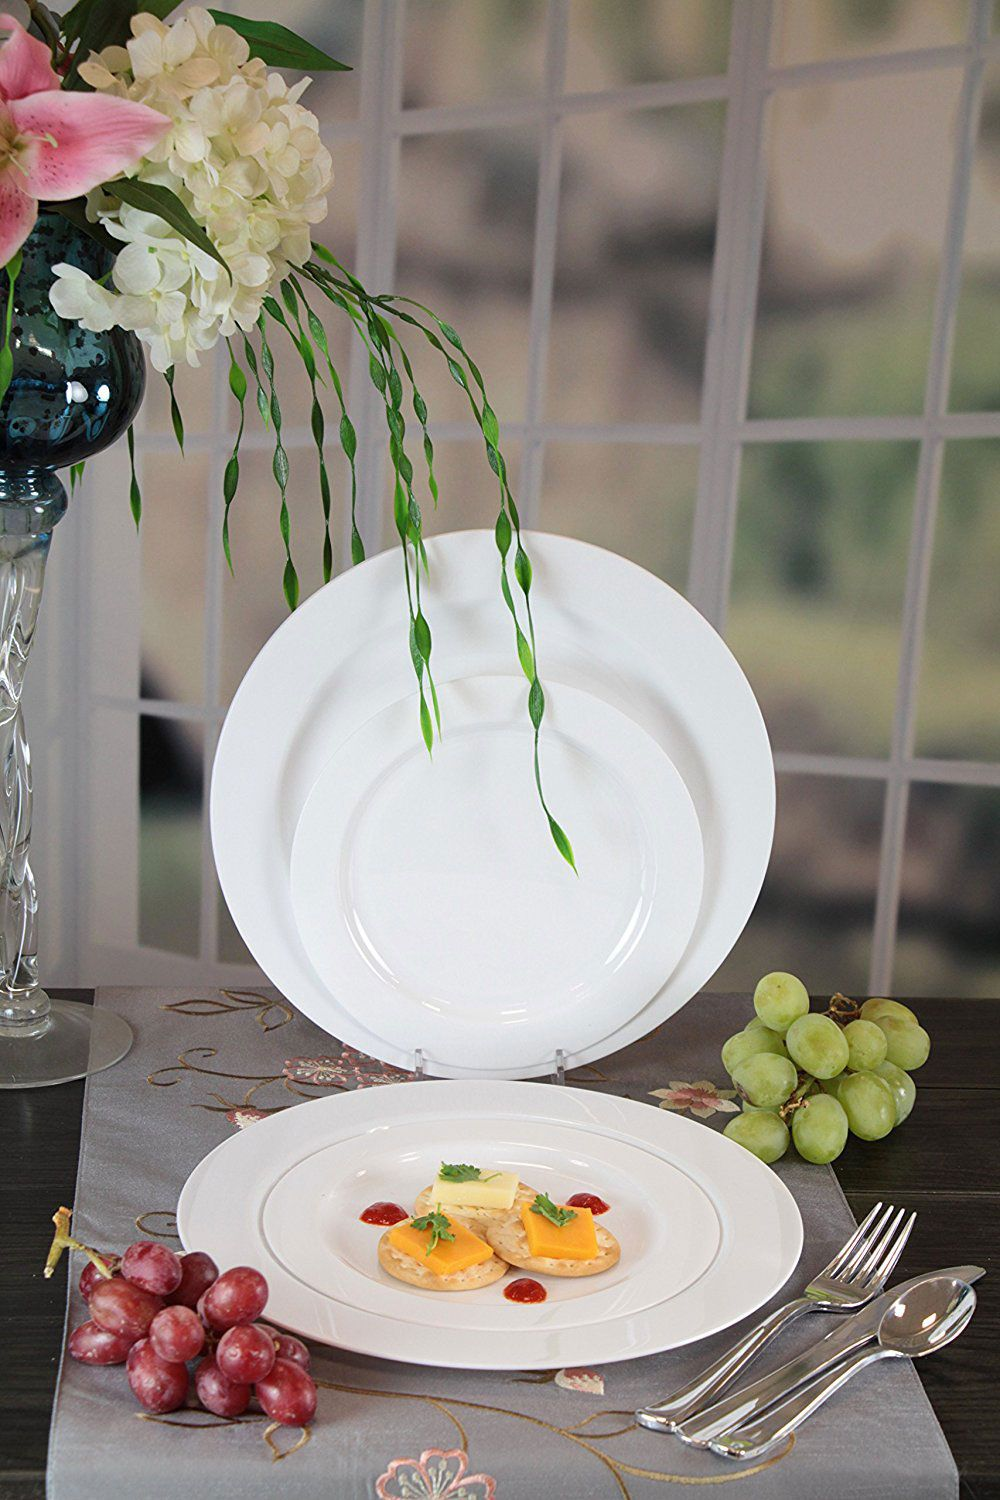 Premium Quality Heavyweight Plastic Plates & Best Fancy Disposable Plates on Amazon